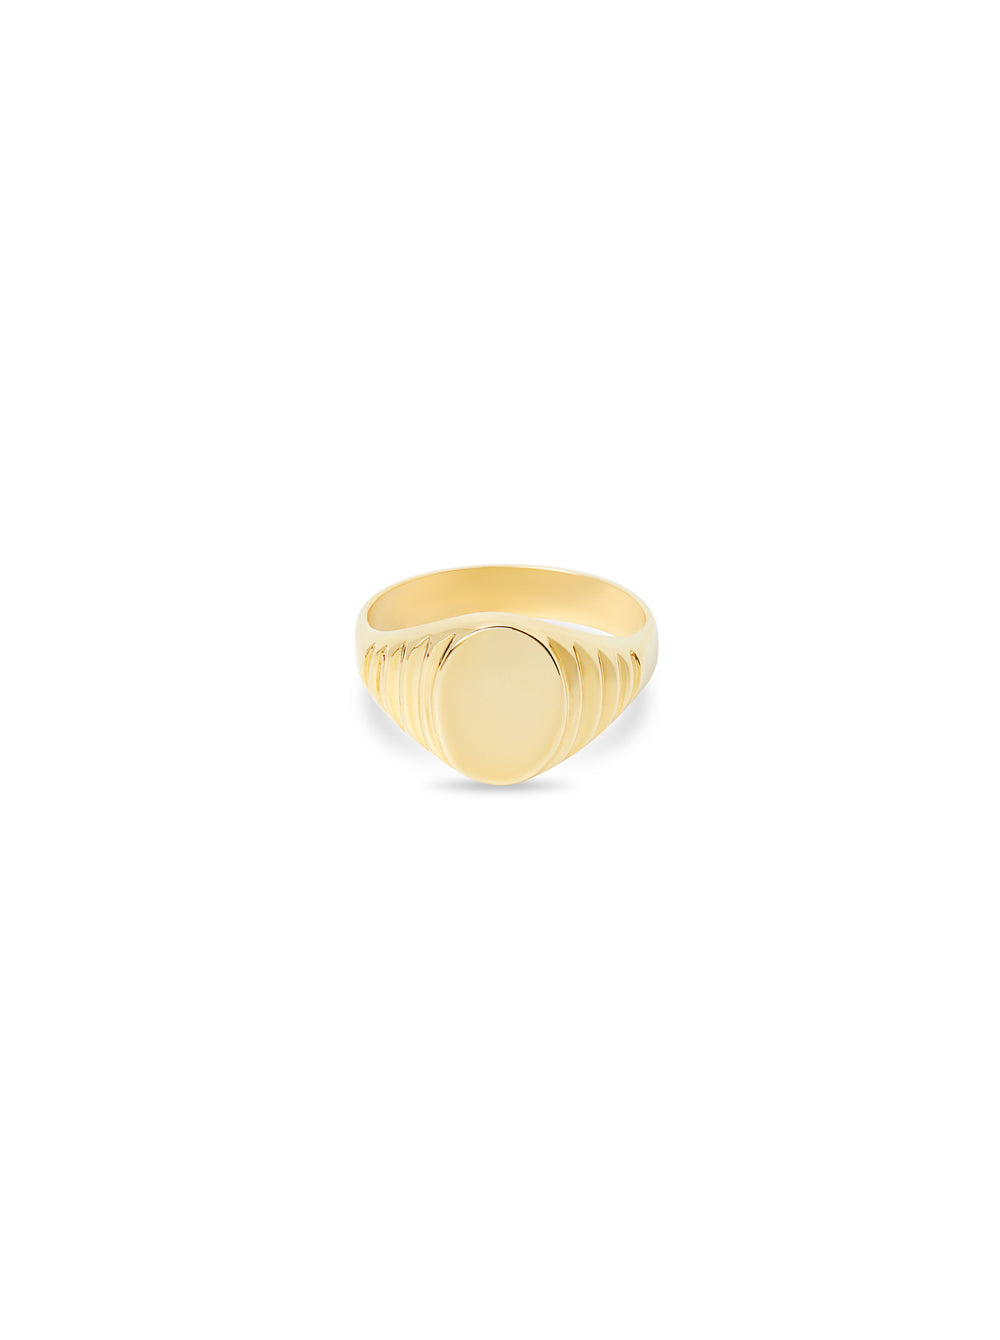 THE 10KT GOLD SIGNET RING